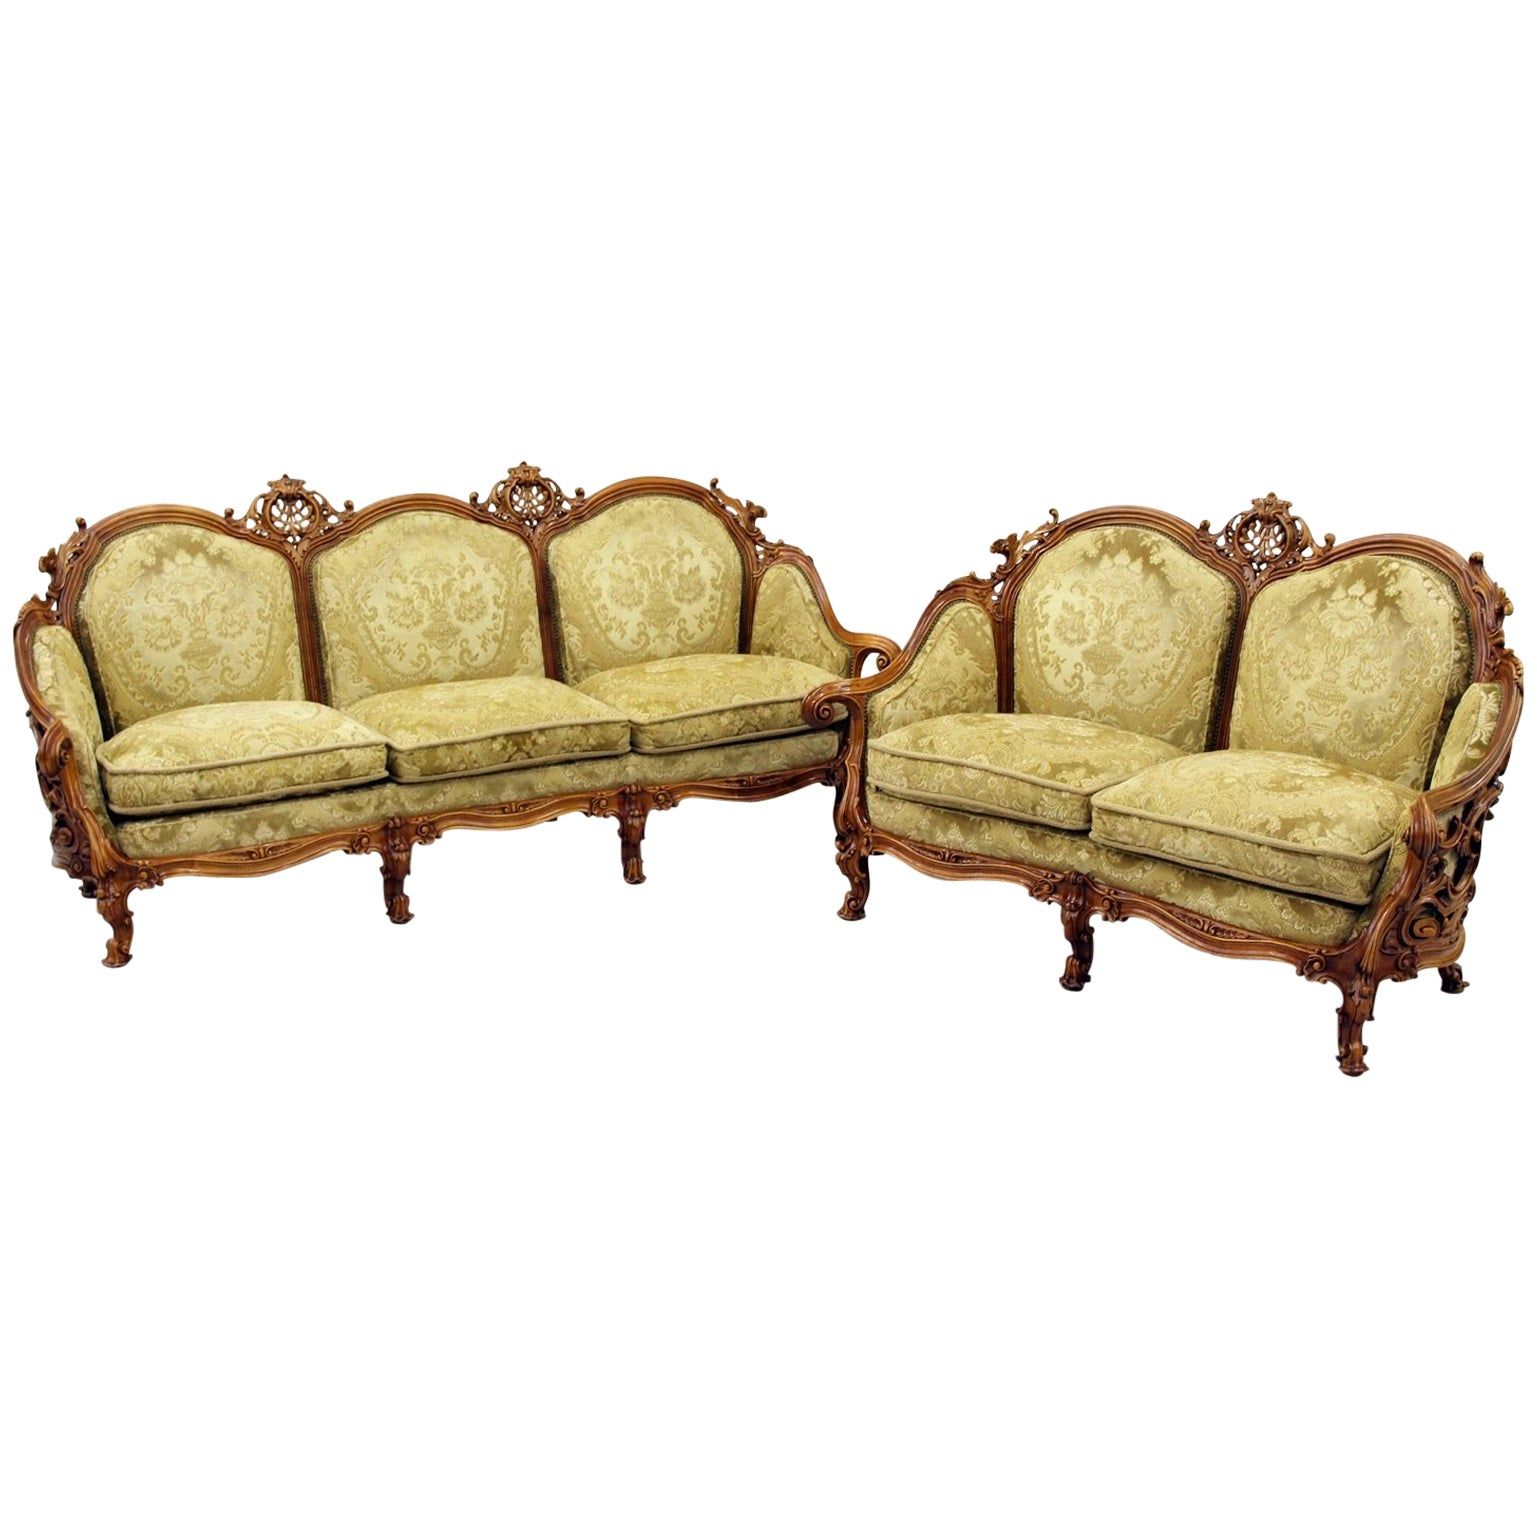 Sofa Couch Or Chesterfield Chippendale Chesterfield Sofa Couch Armchair Baroque Antique Set